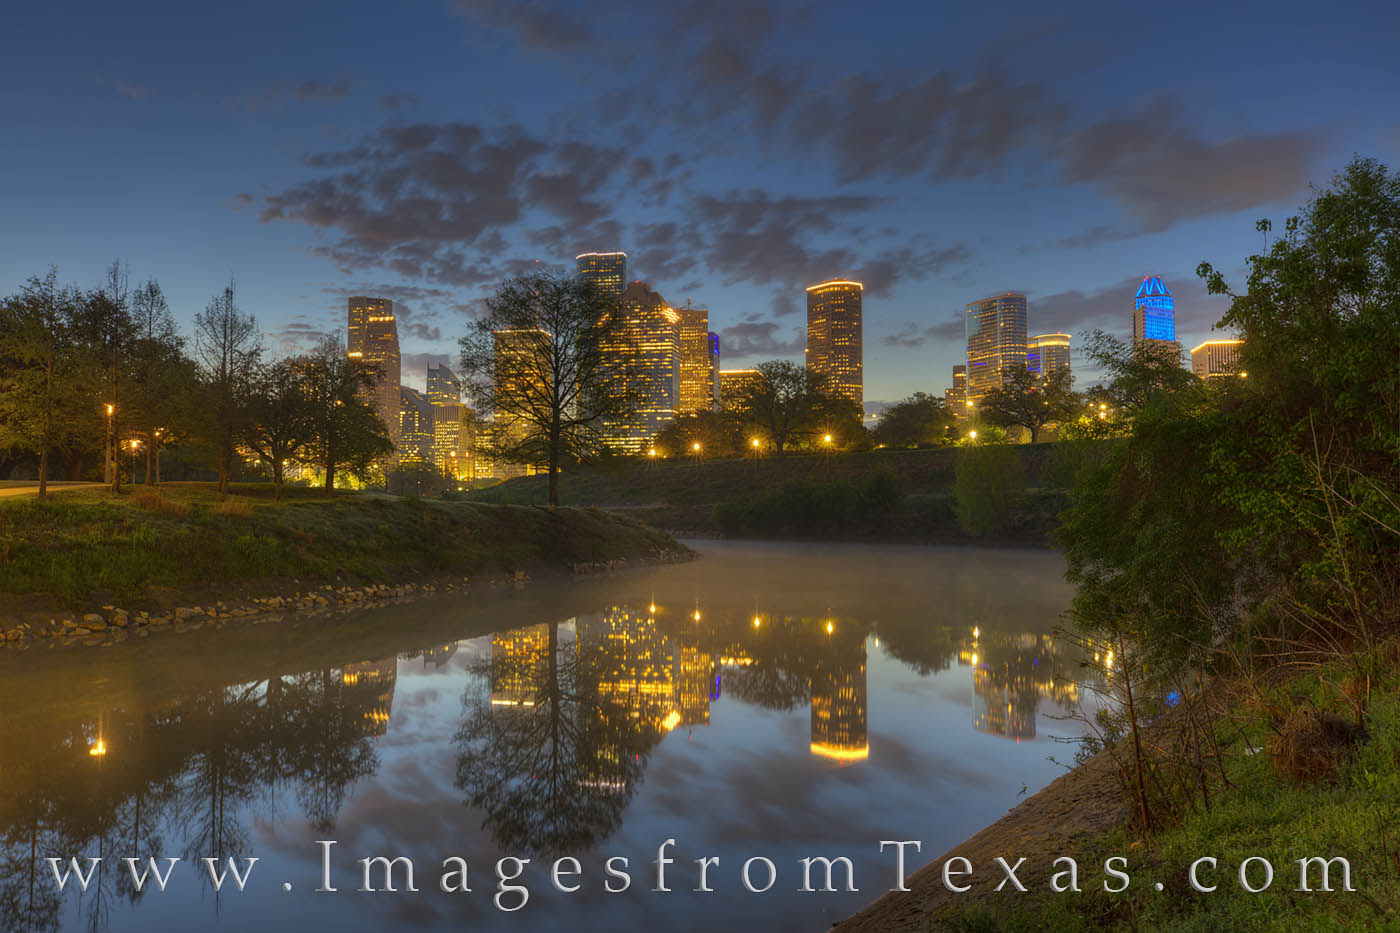 The Houston skyline is beautiful at sunset or sunrise. Here, seen from Buffalo Bayou, the lights still flicker in the early morning...